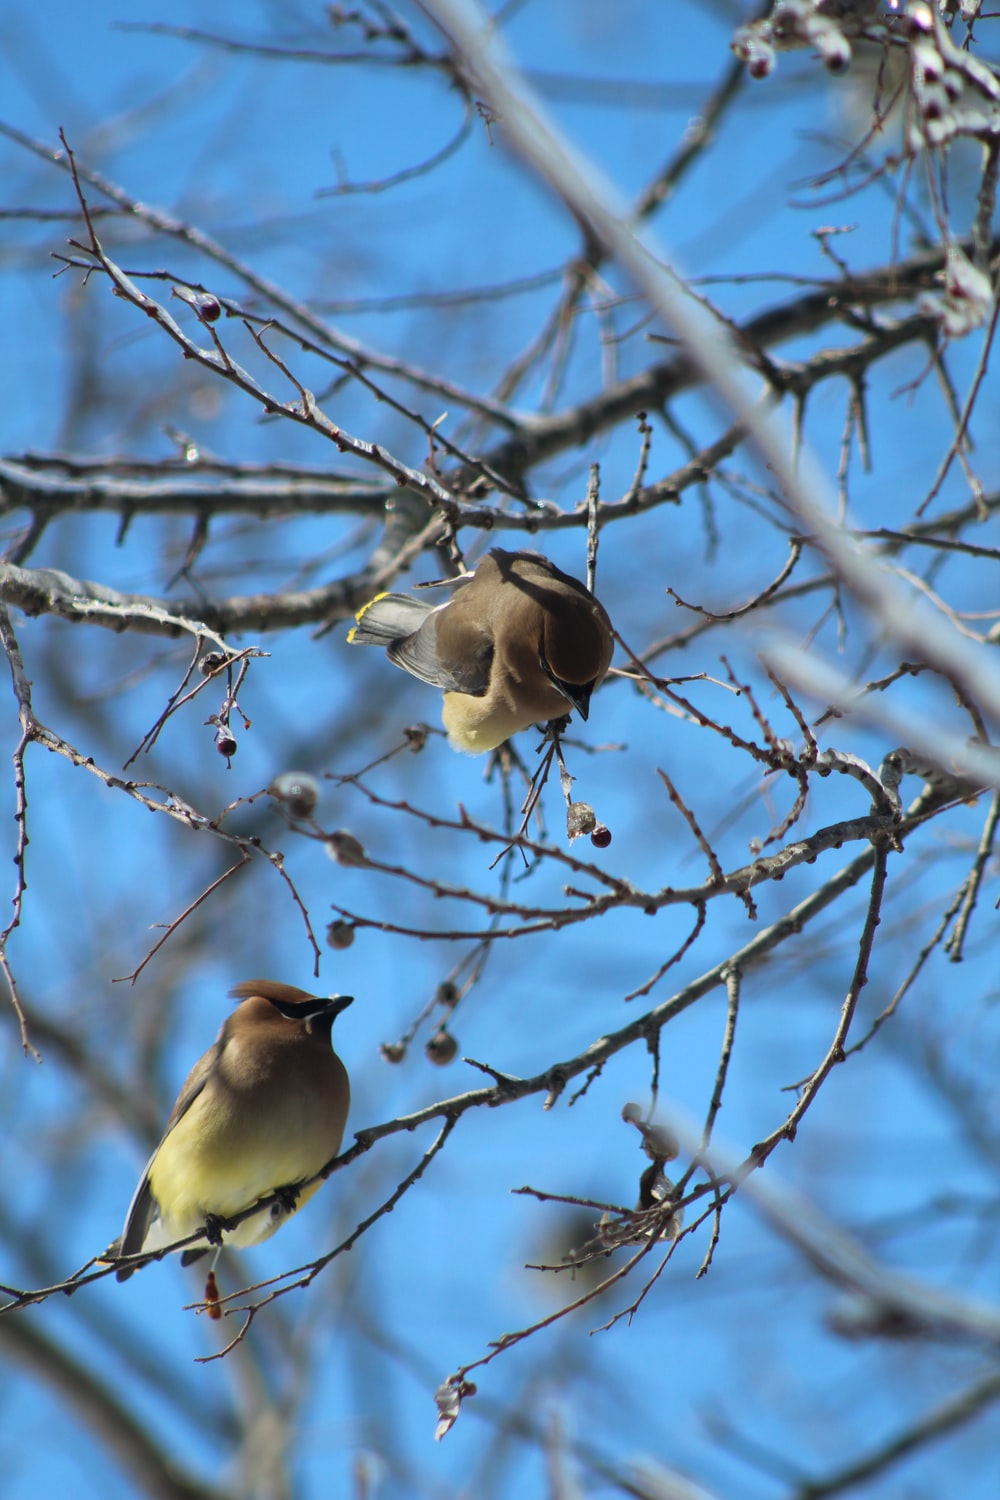 white and brown bird on bare tree during daytime